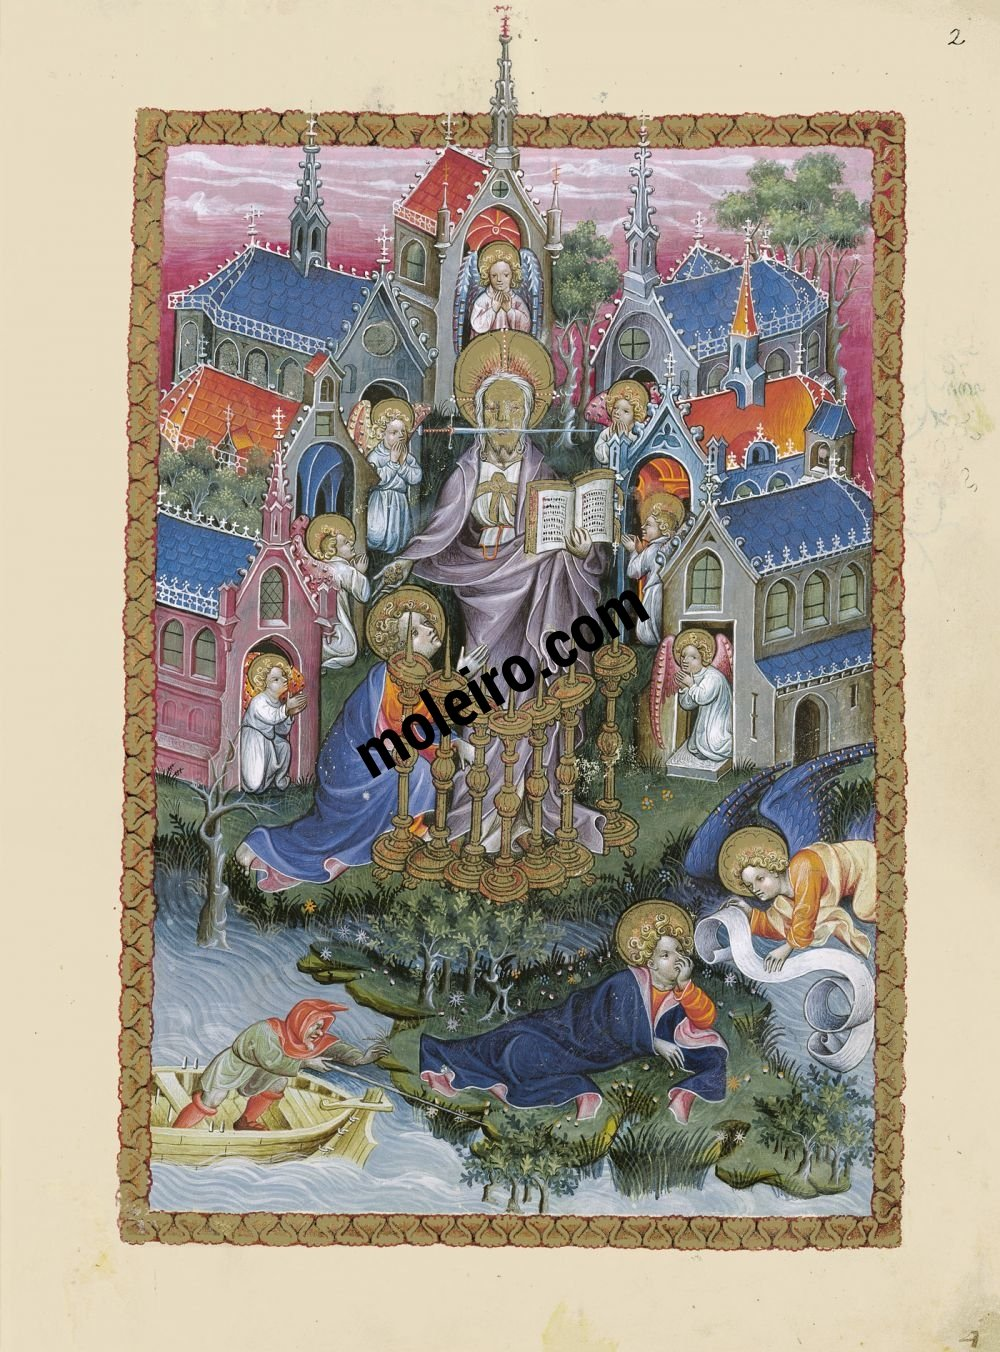 Flemish Apocalypse f. 2r, St. John on Patmos. The vision of Christ and seven candlesticks and the seven churches of Asia